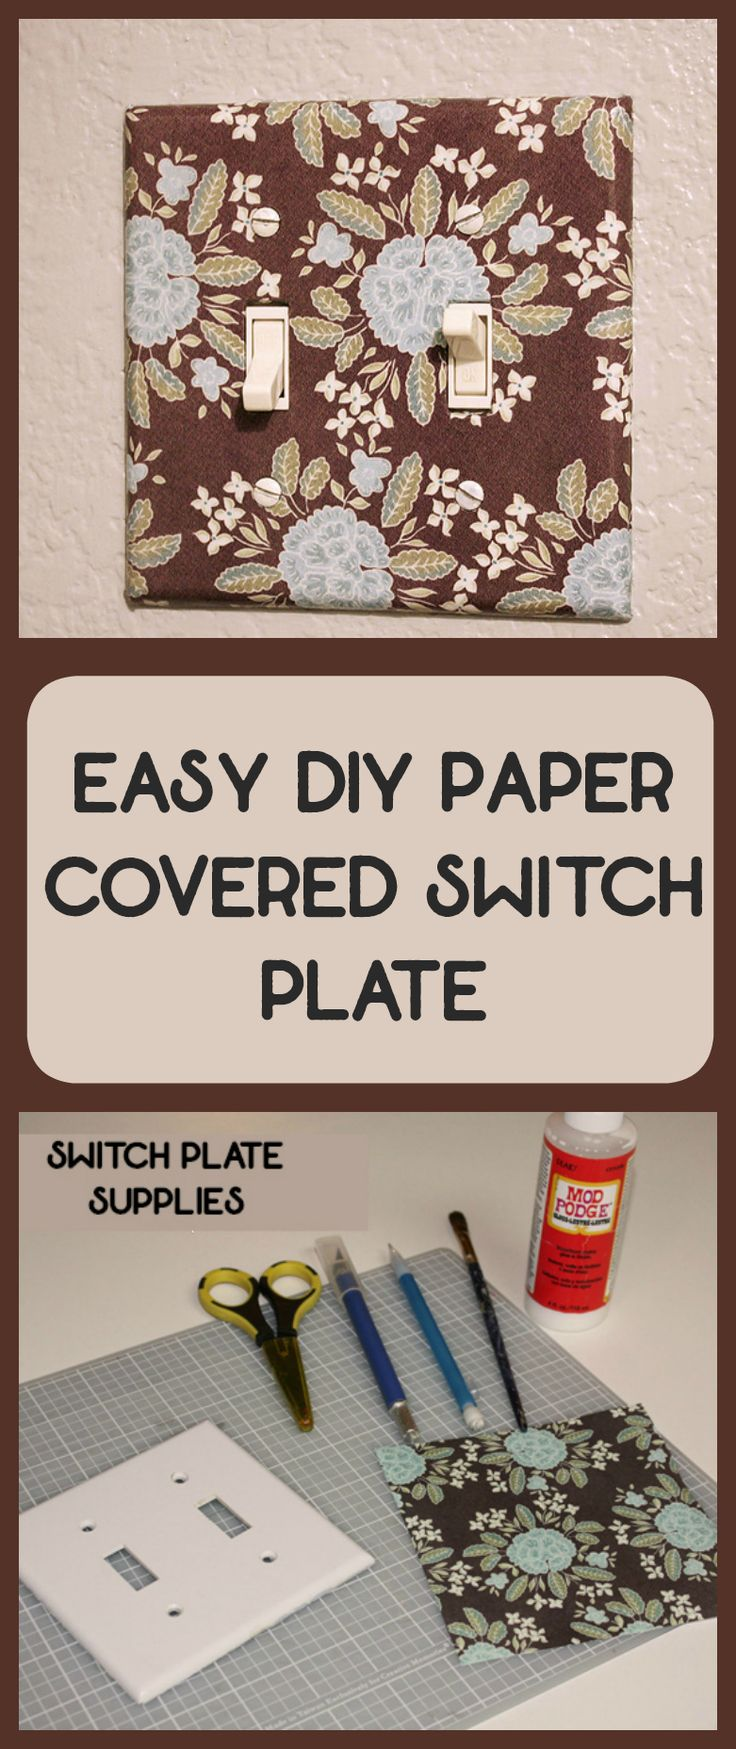 DIY paper covered switch plate tutorial. How to use your favorite paper to make your own swtich plate.  A great DIY home decor project for customizing any room #diy #diyhome #homedecor #crafts